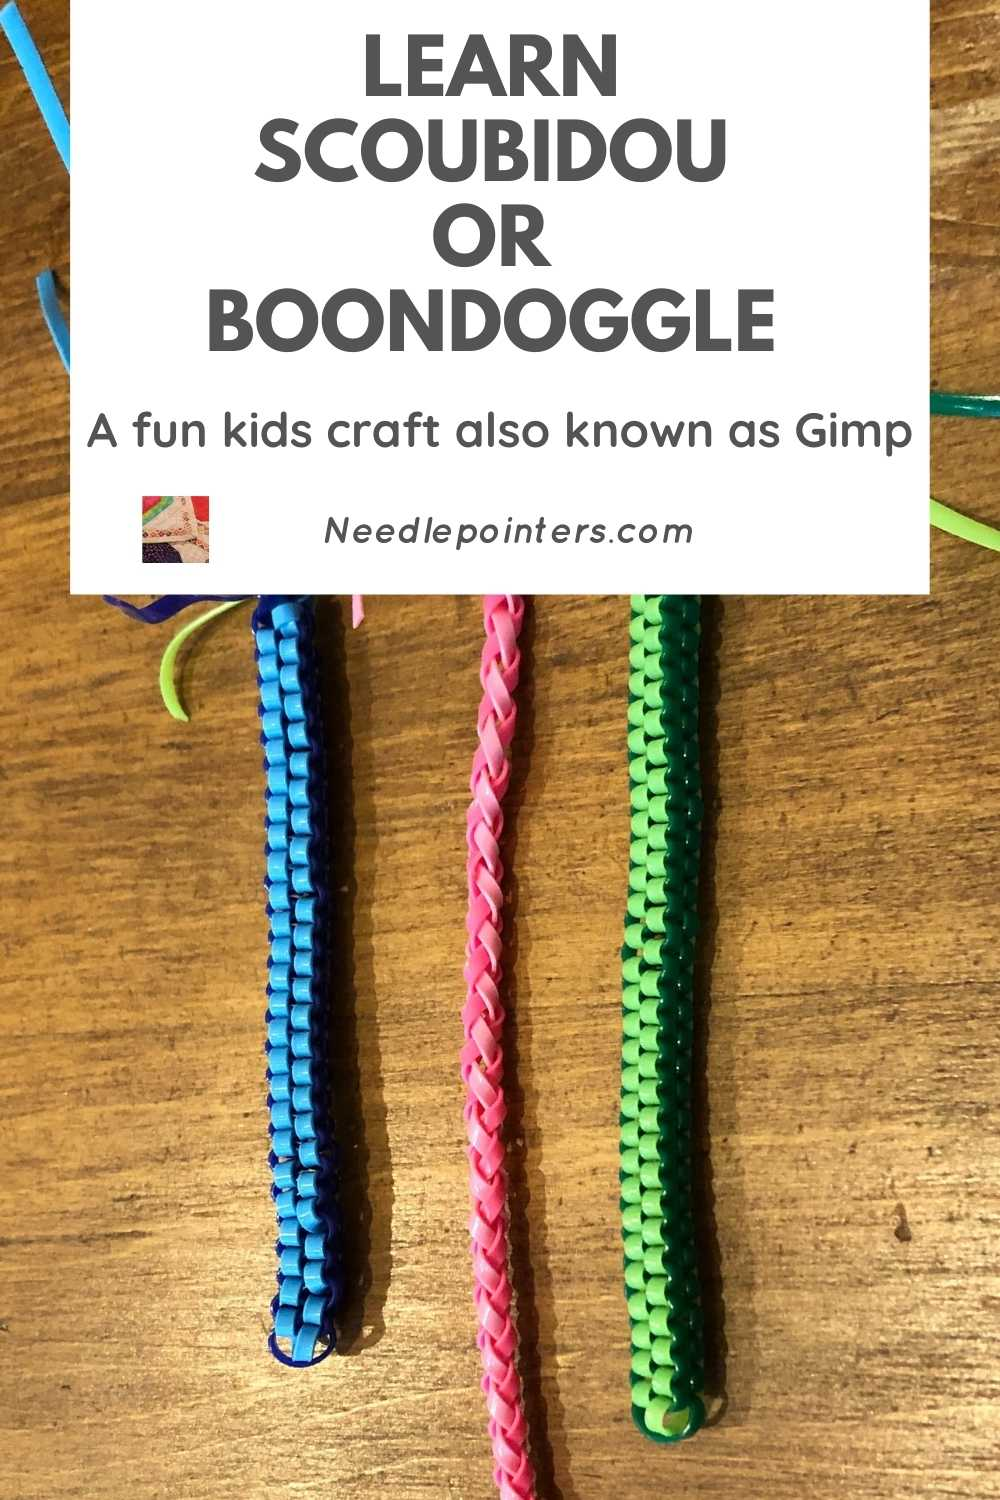 The Fun Craft Of Scoubidou Or Boonedoggle Needlepointers Com